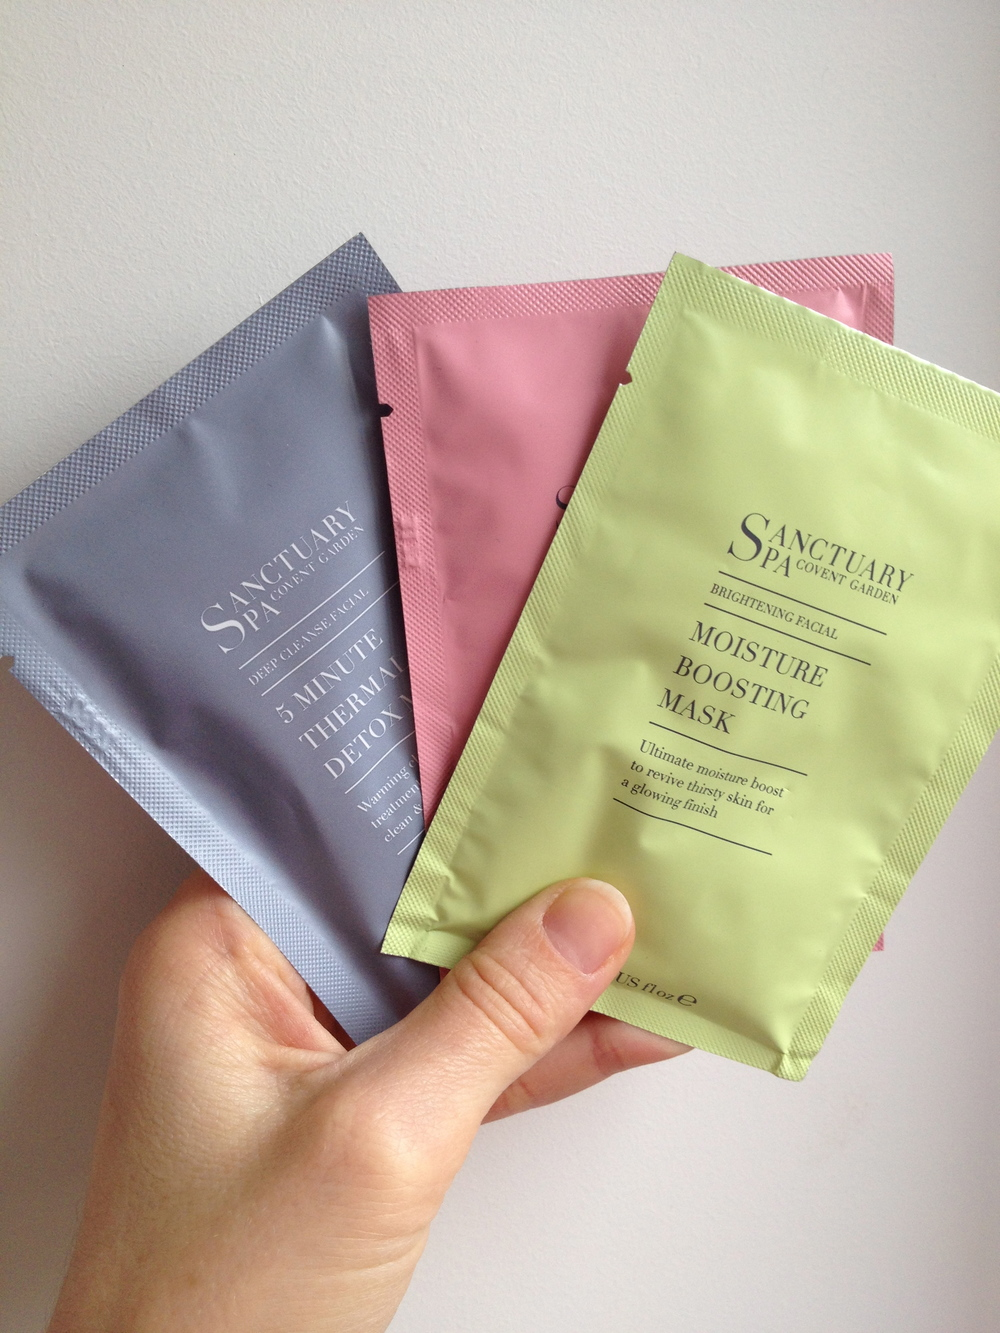 Face masks by The Sanctuary Spa, available at Boots